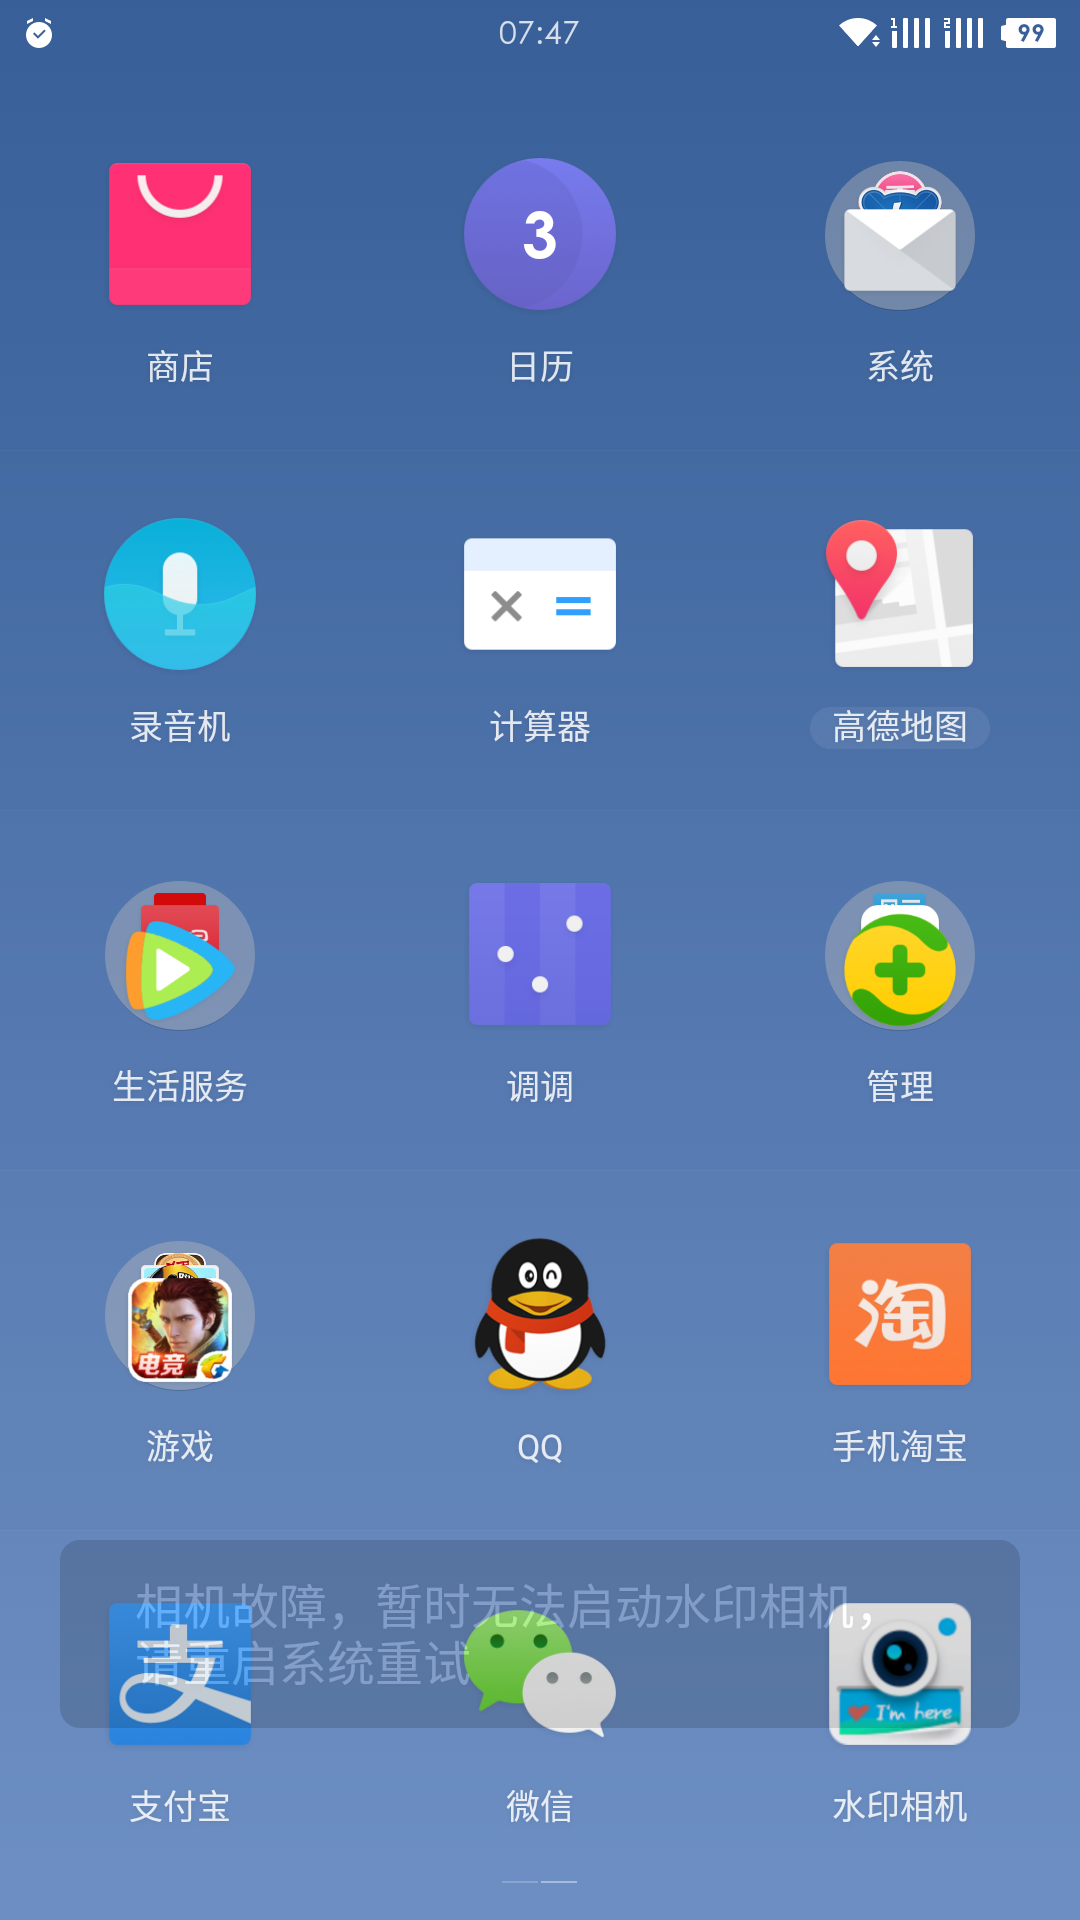 Screenshot_2015-12-03-07-47-04.png